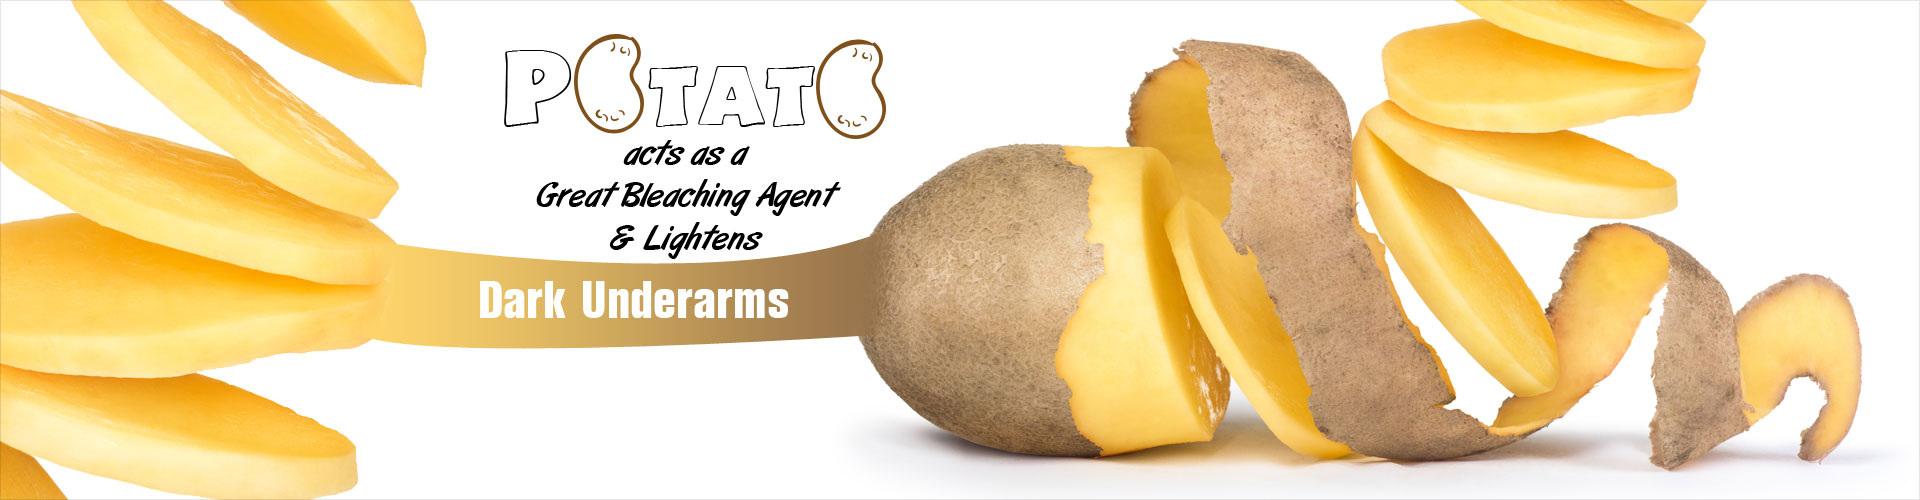 Potato Acts as a Great Bleaching Agent and Lightens Dark Underarms